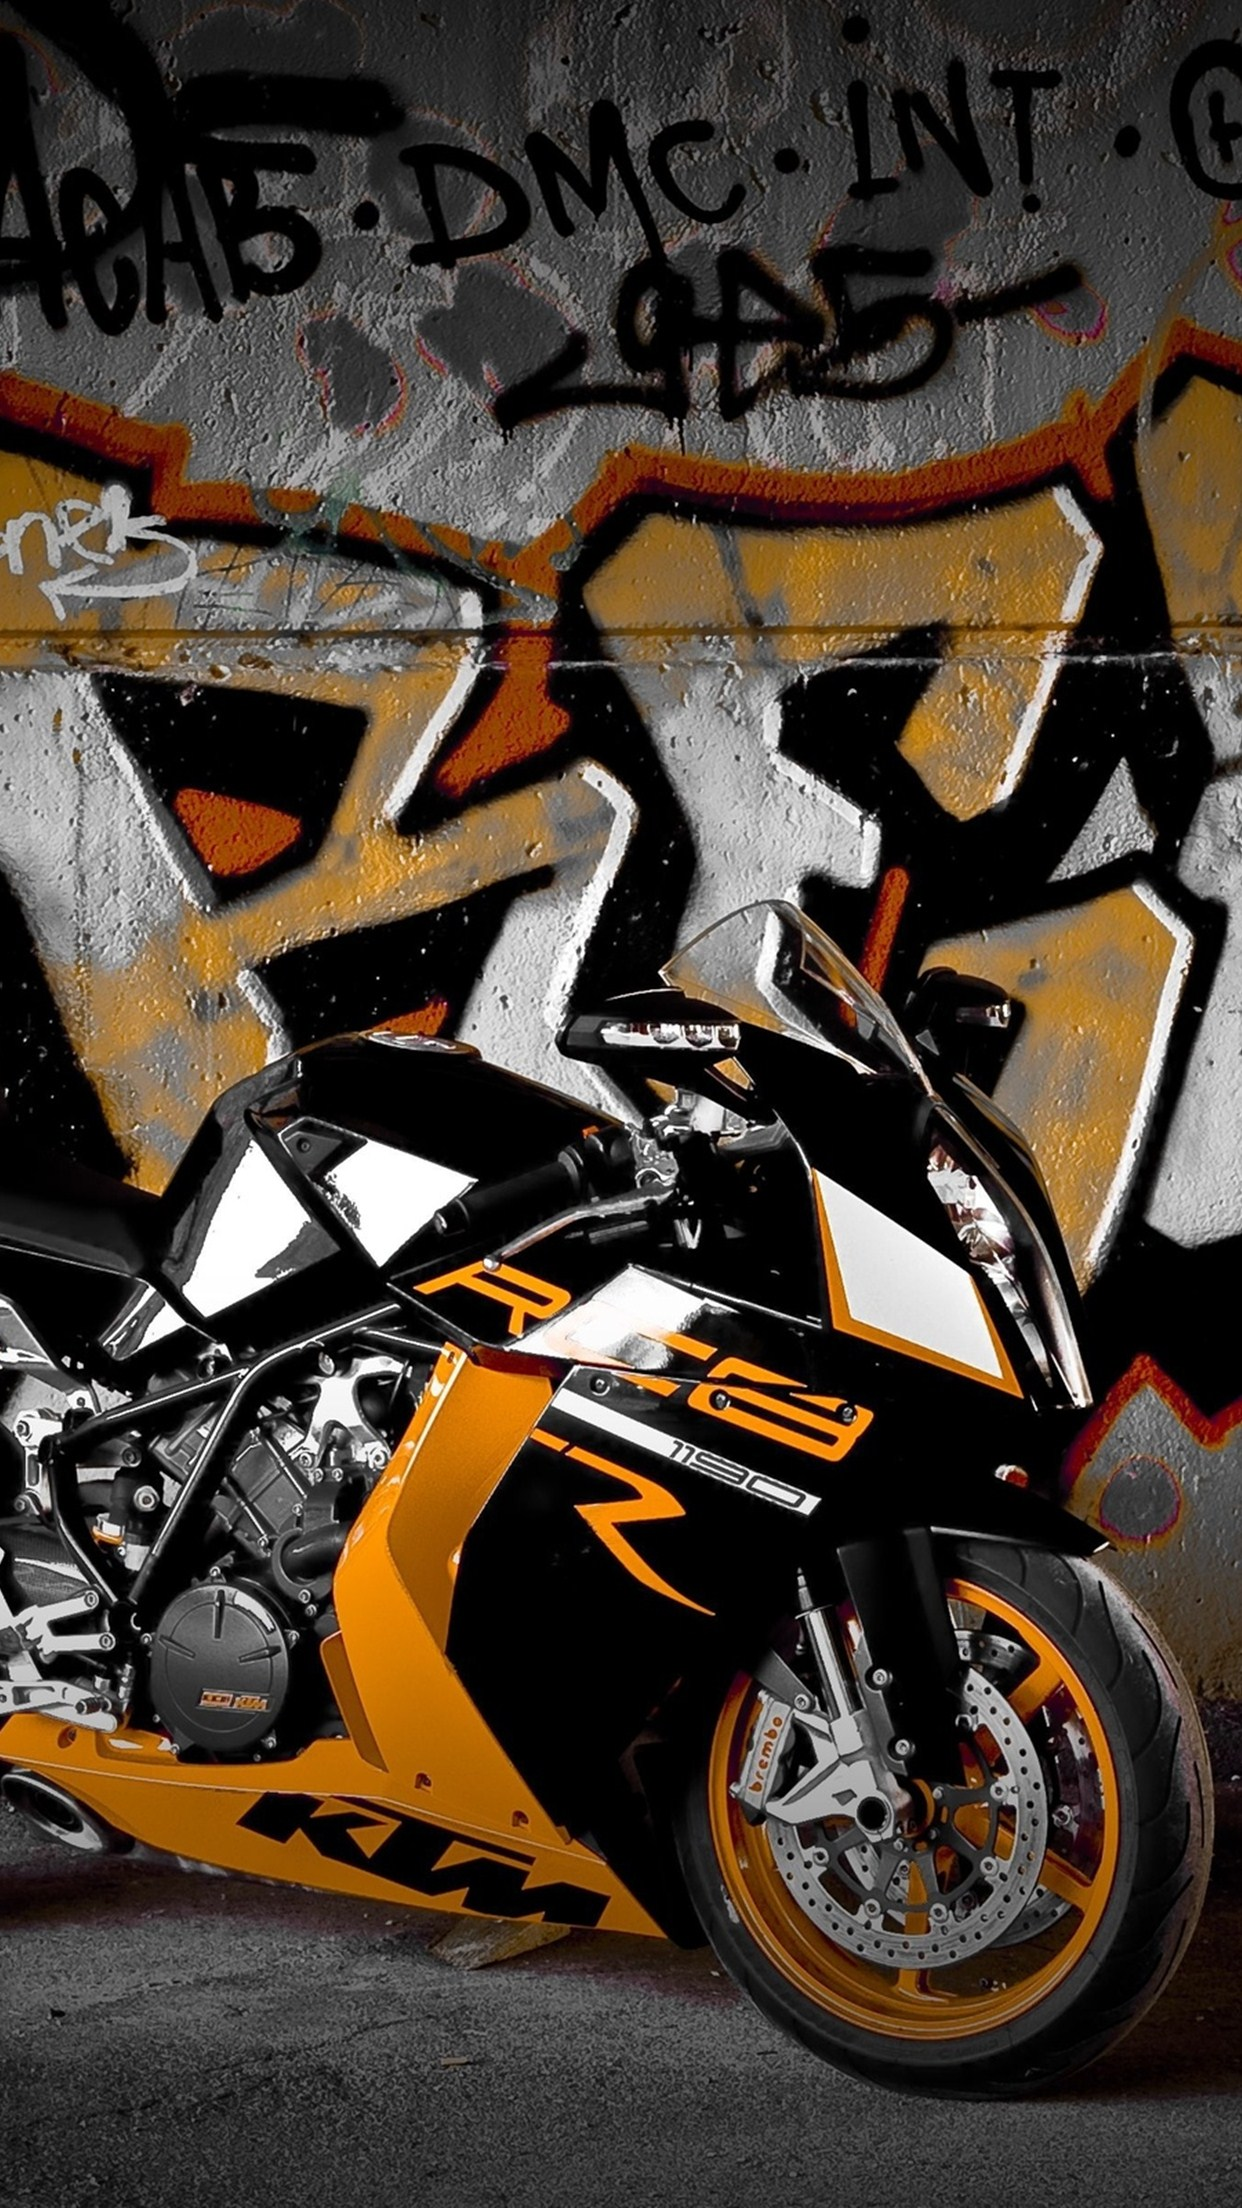 Moto Ktm Rc8 Wallpaper For Iphone 11 Pro Max X 8 7 6 Free Download On 3wallpapers